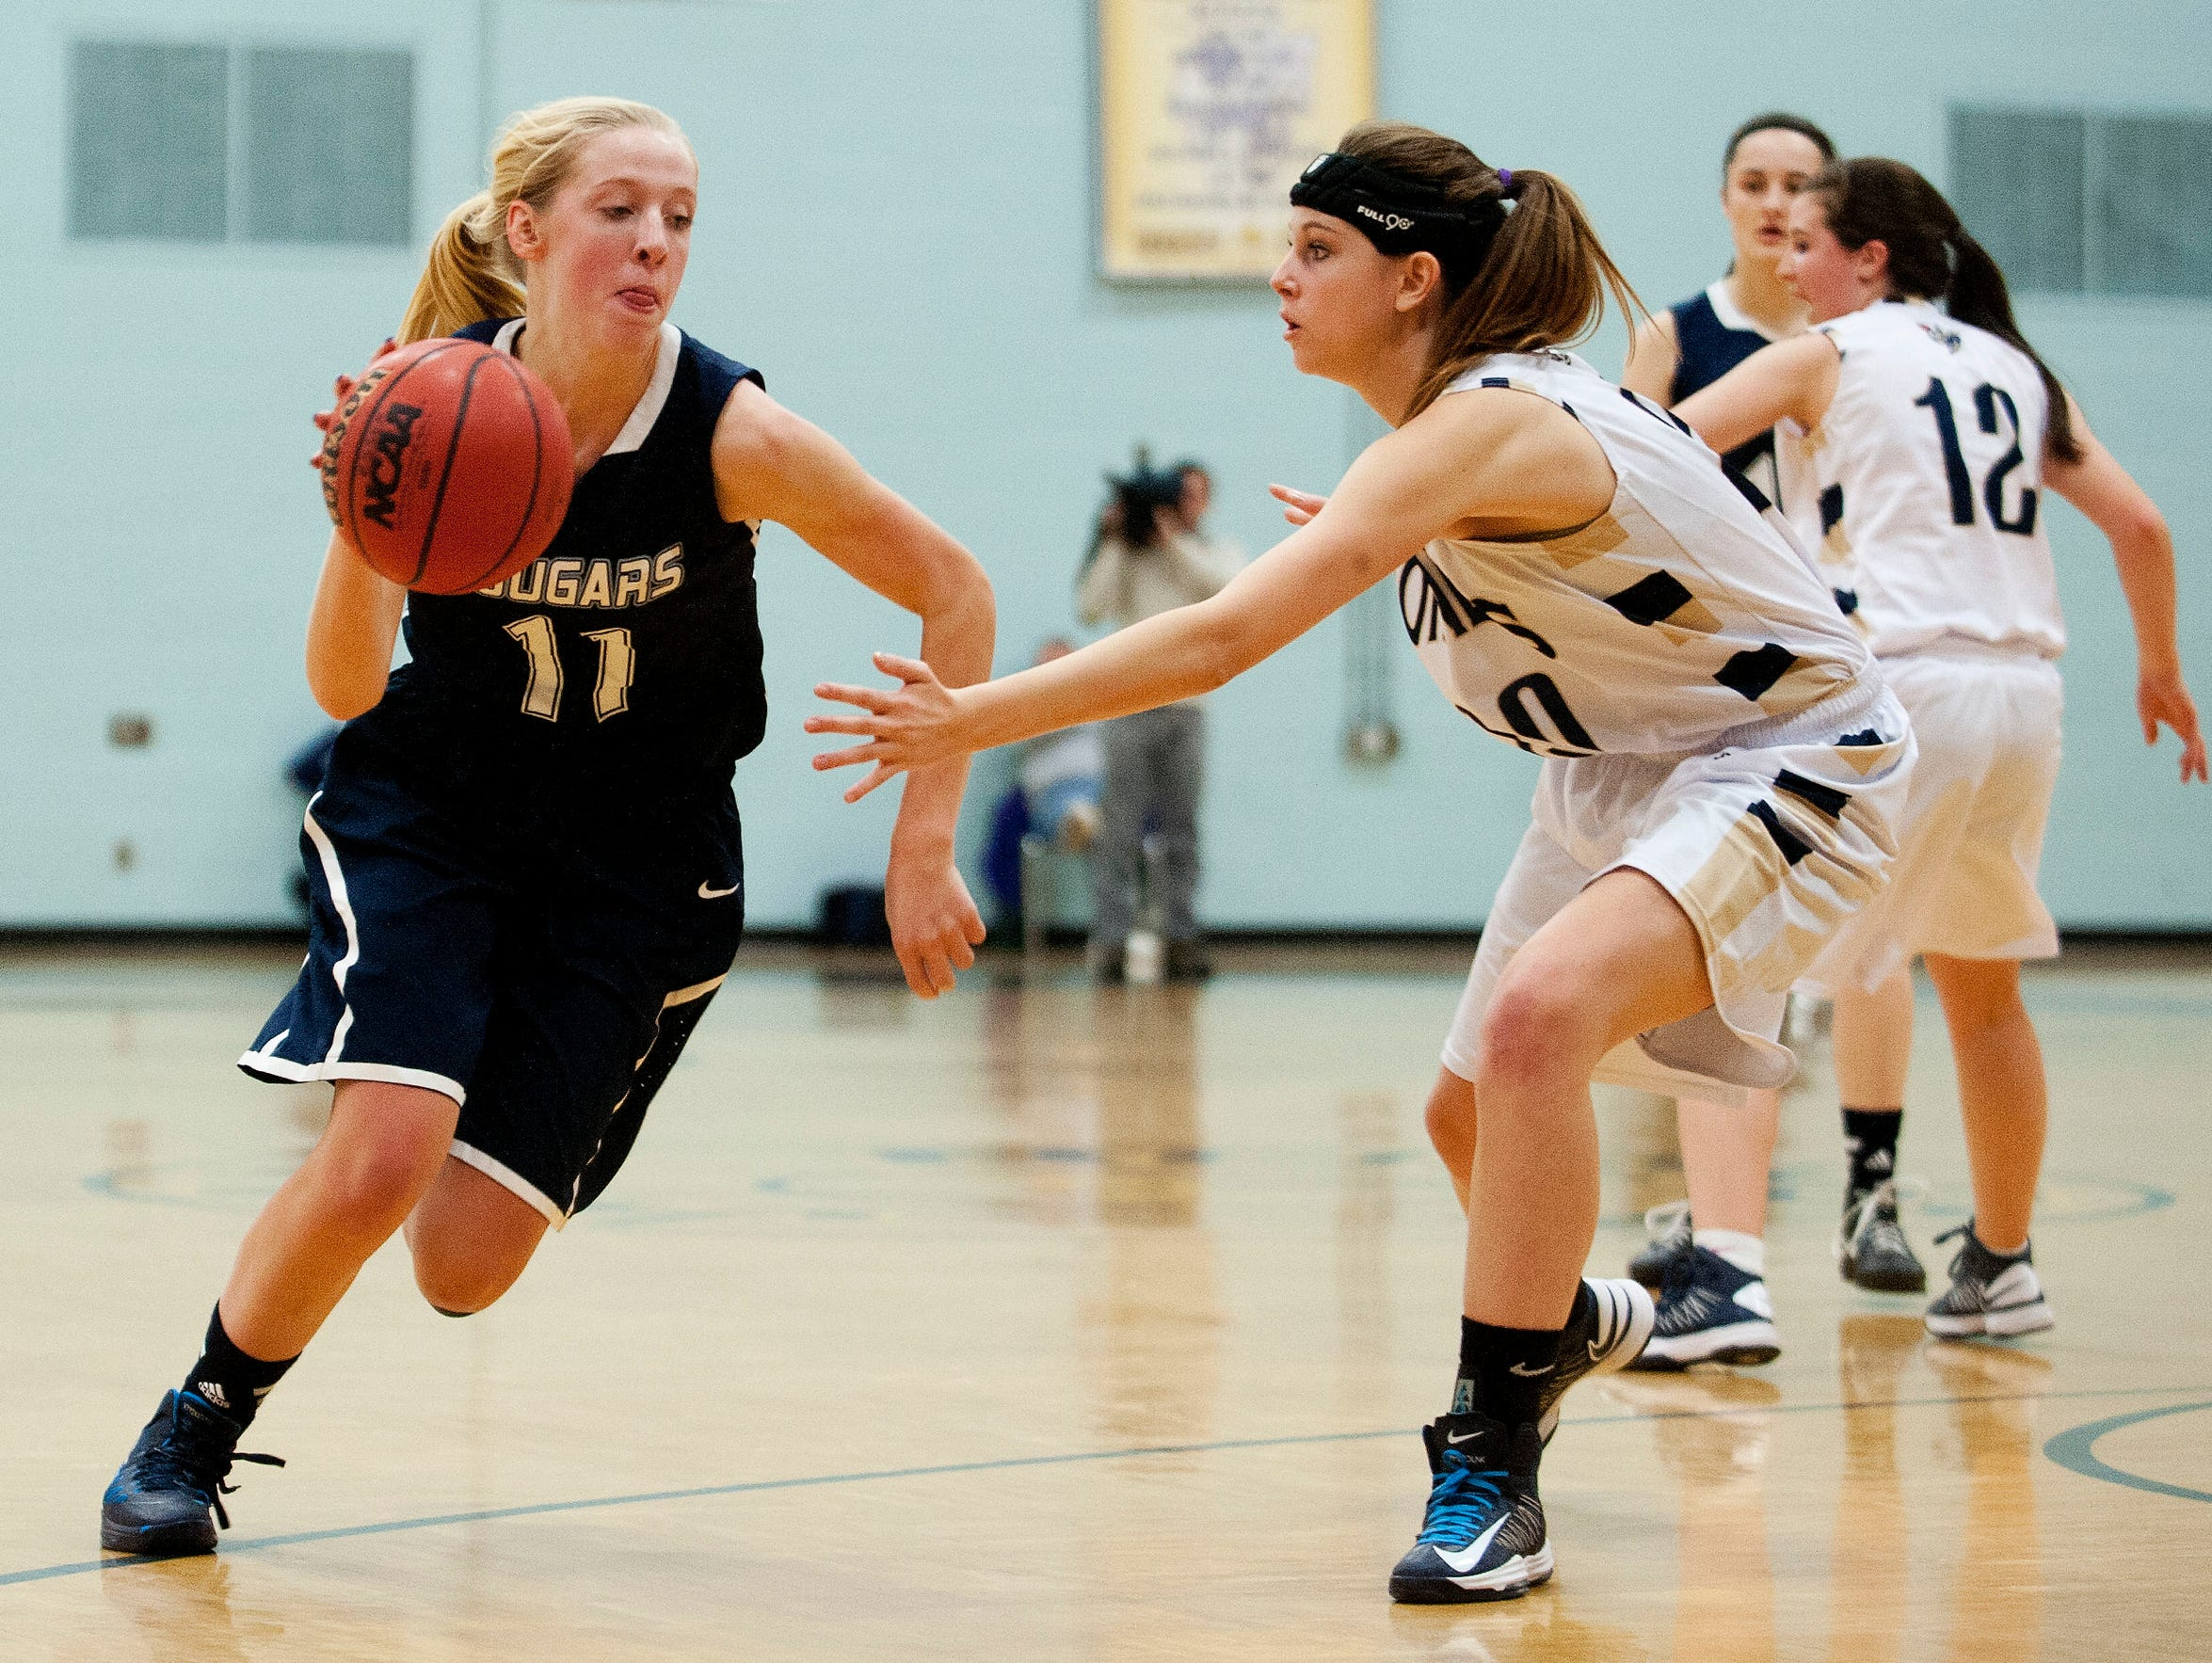 Mount Mansfield's Colby Knight (11) drives to the hoop